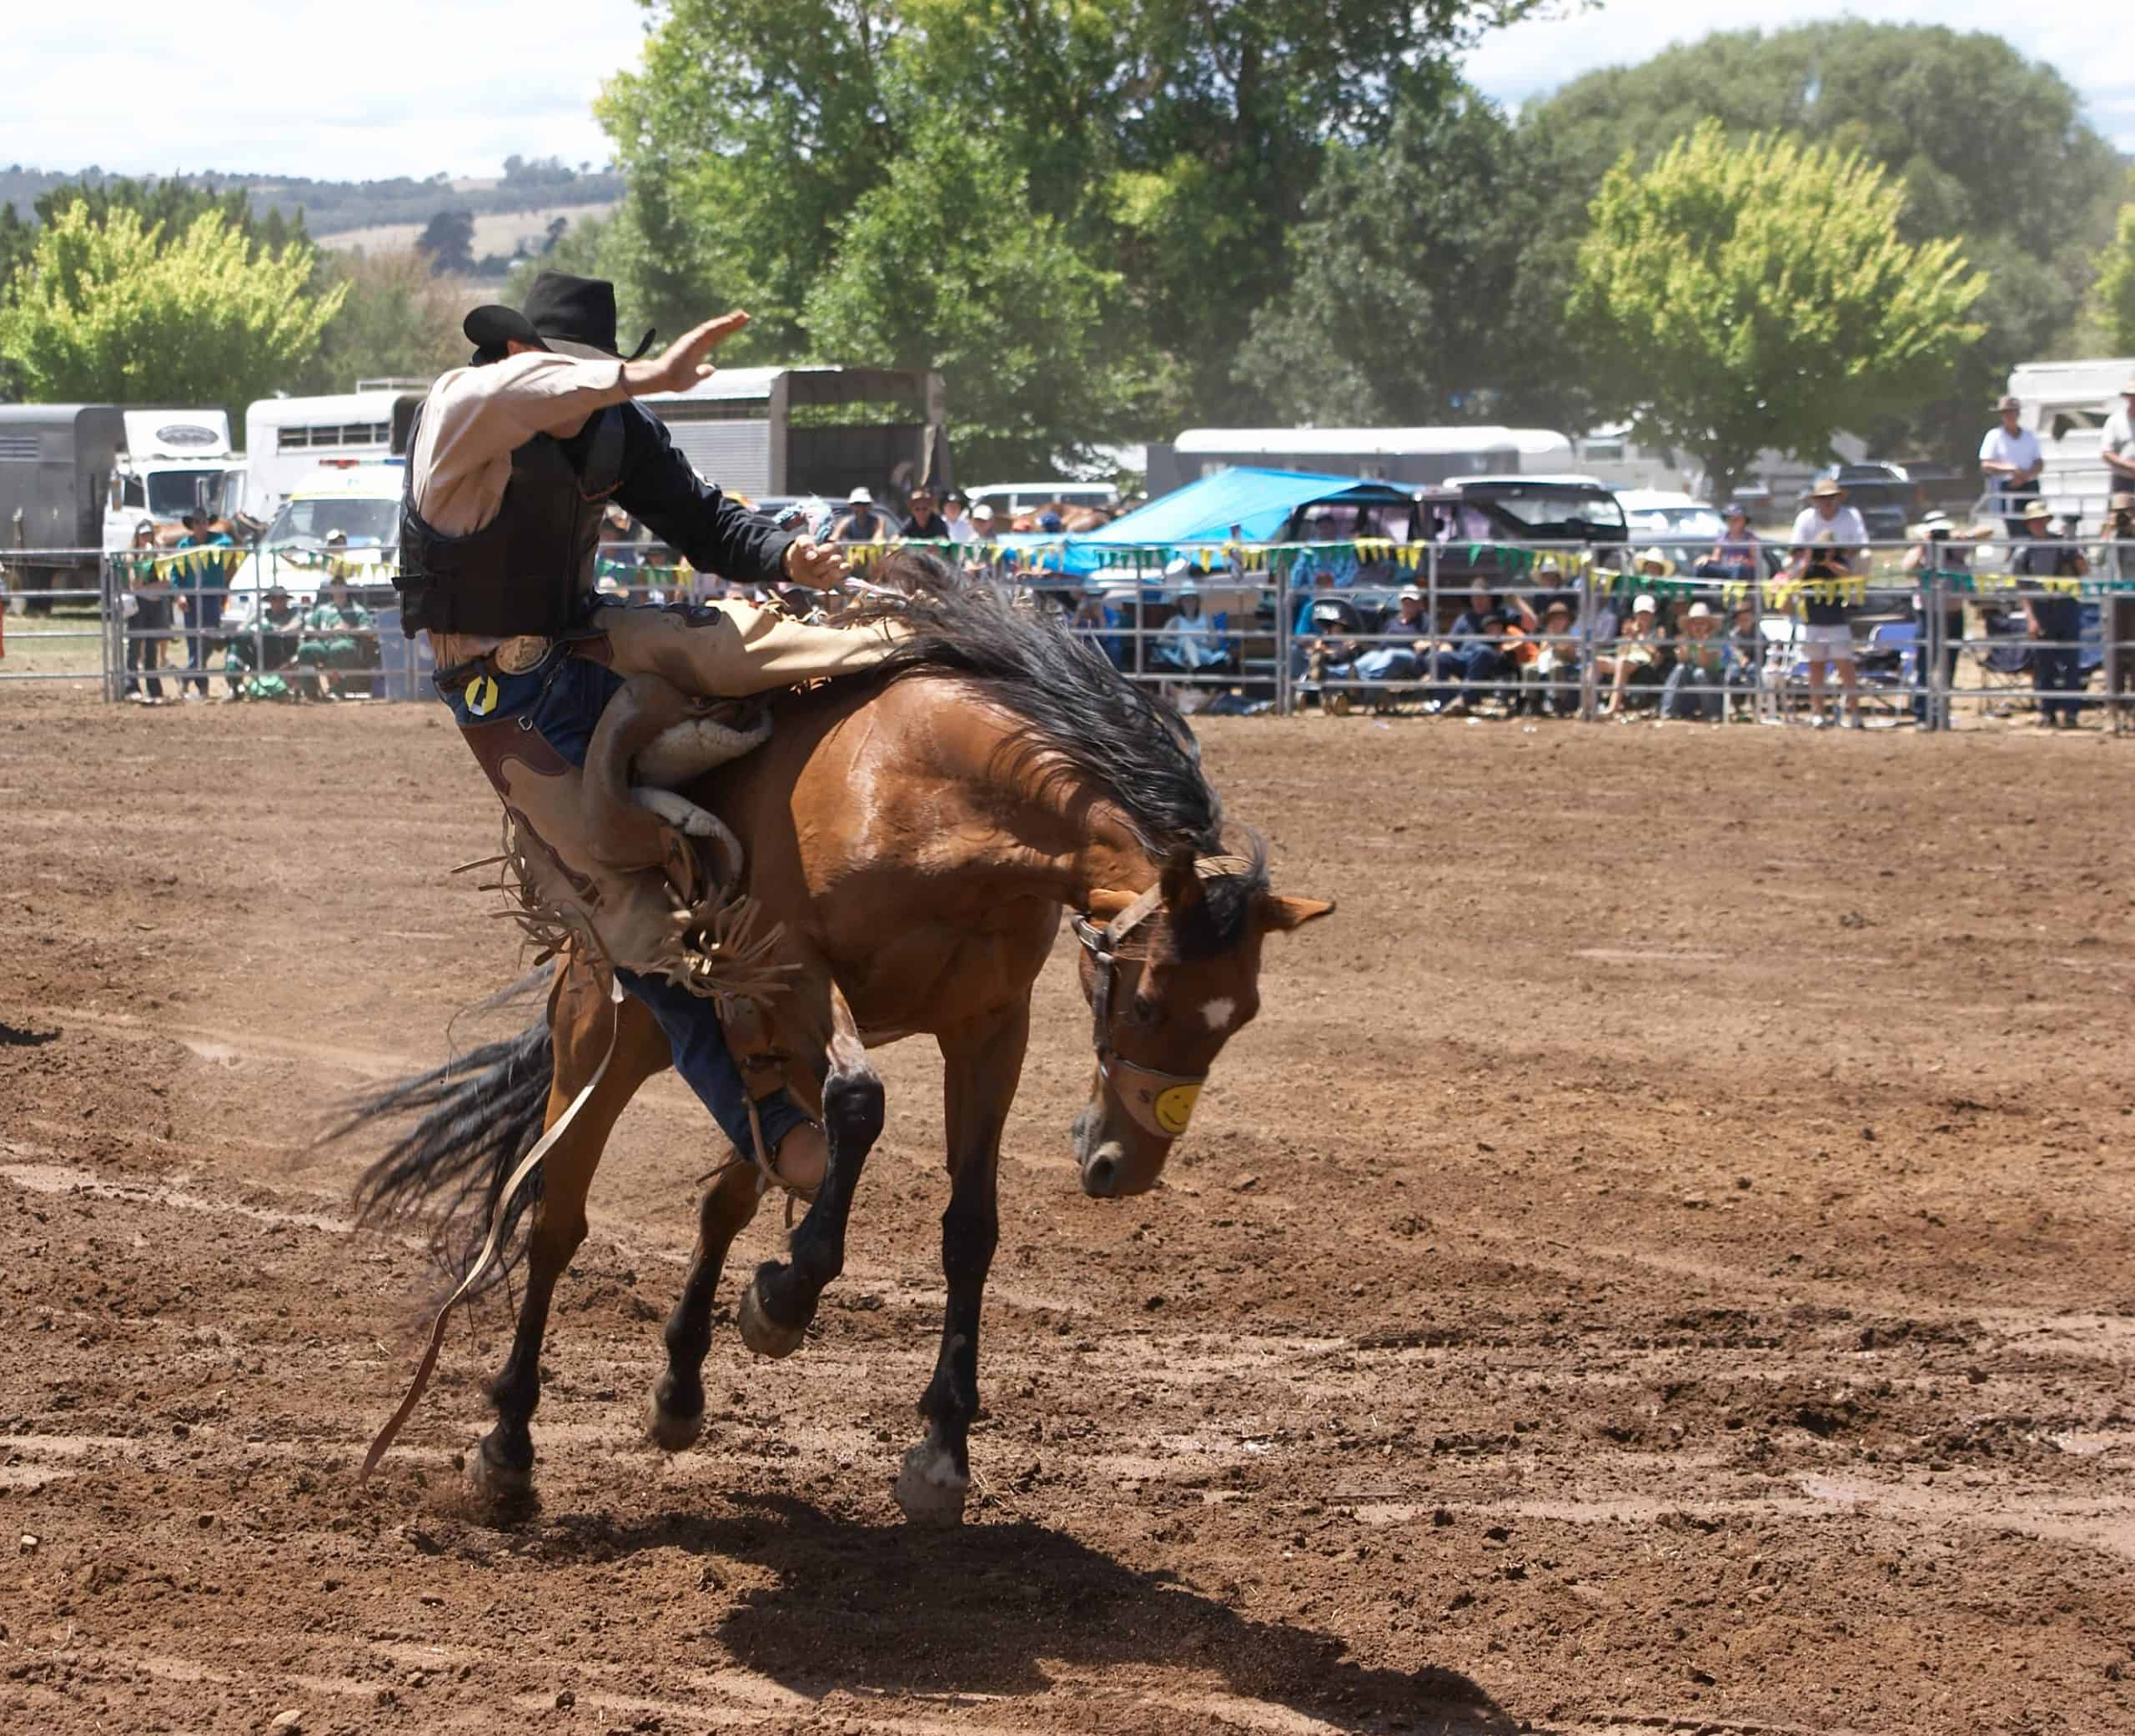 Cowboy riding bucking horse at a rodeo